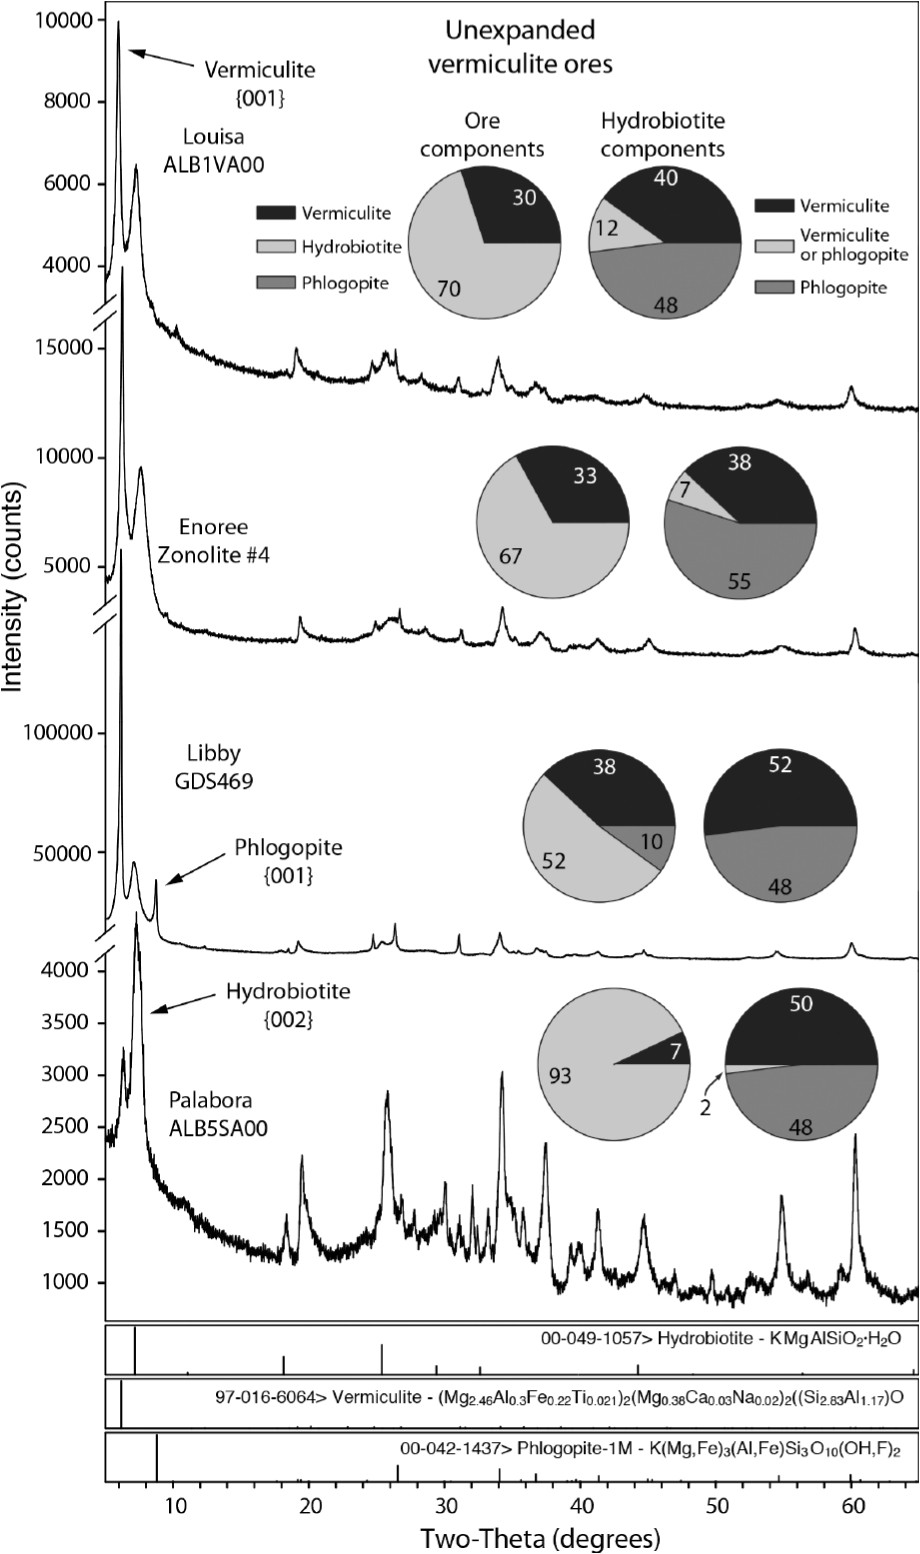 quantitative x ray diffraction analyses of selected unexpanded vermiculite ore samples relative intensity ratios